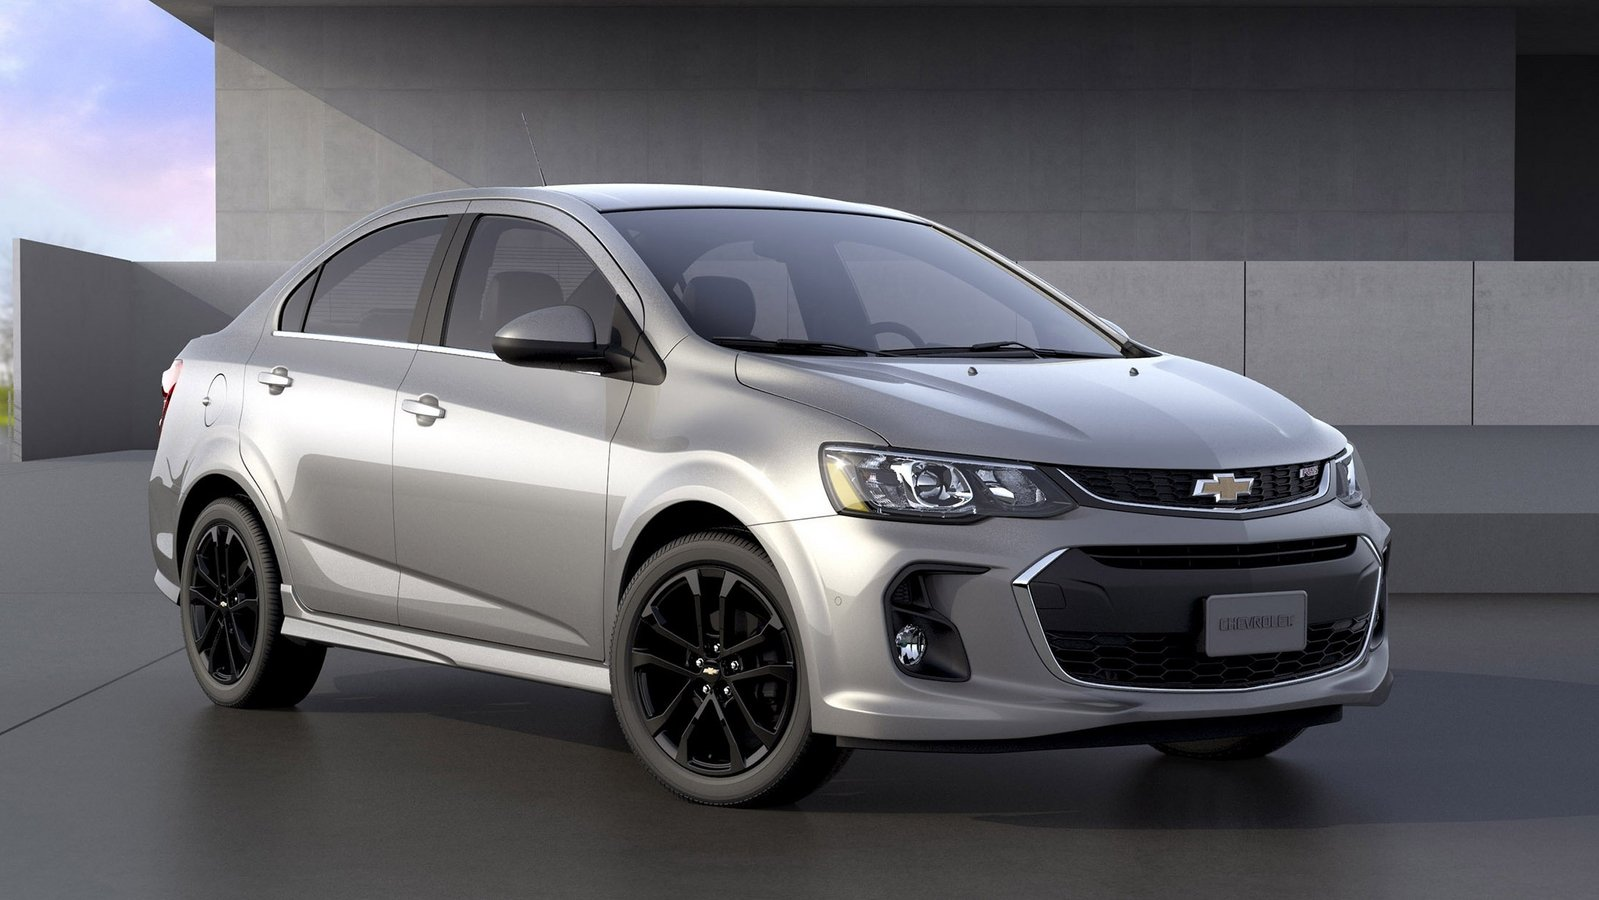 2017 chevrolet sonic picture 669969 car review top speed. Black Bedroom Furniture Sets. Home Design Ideas